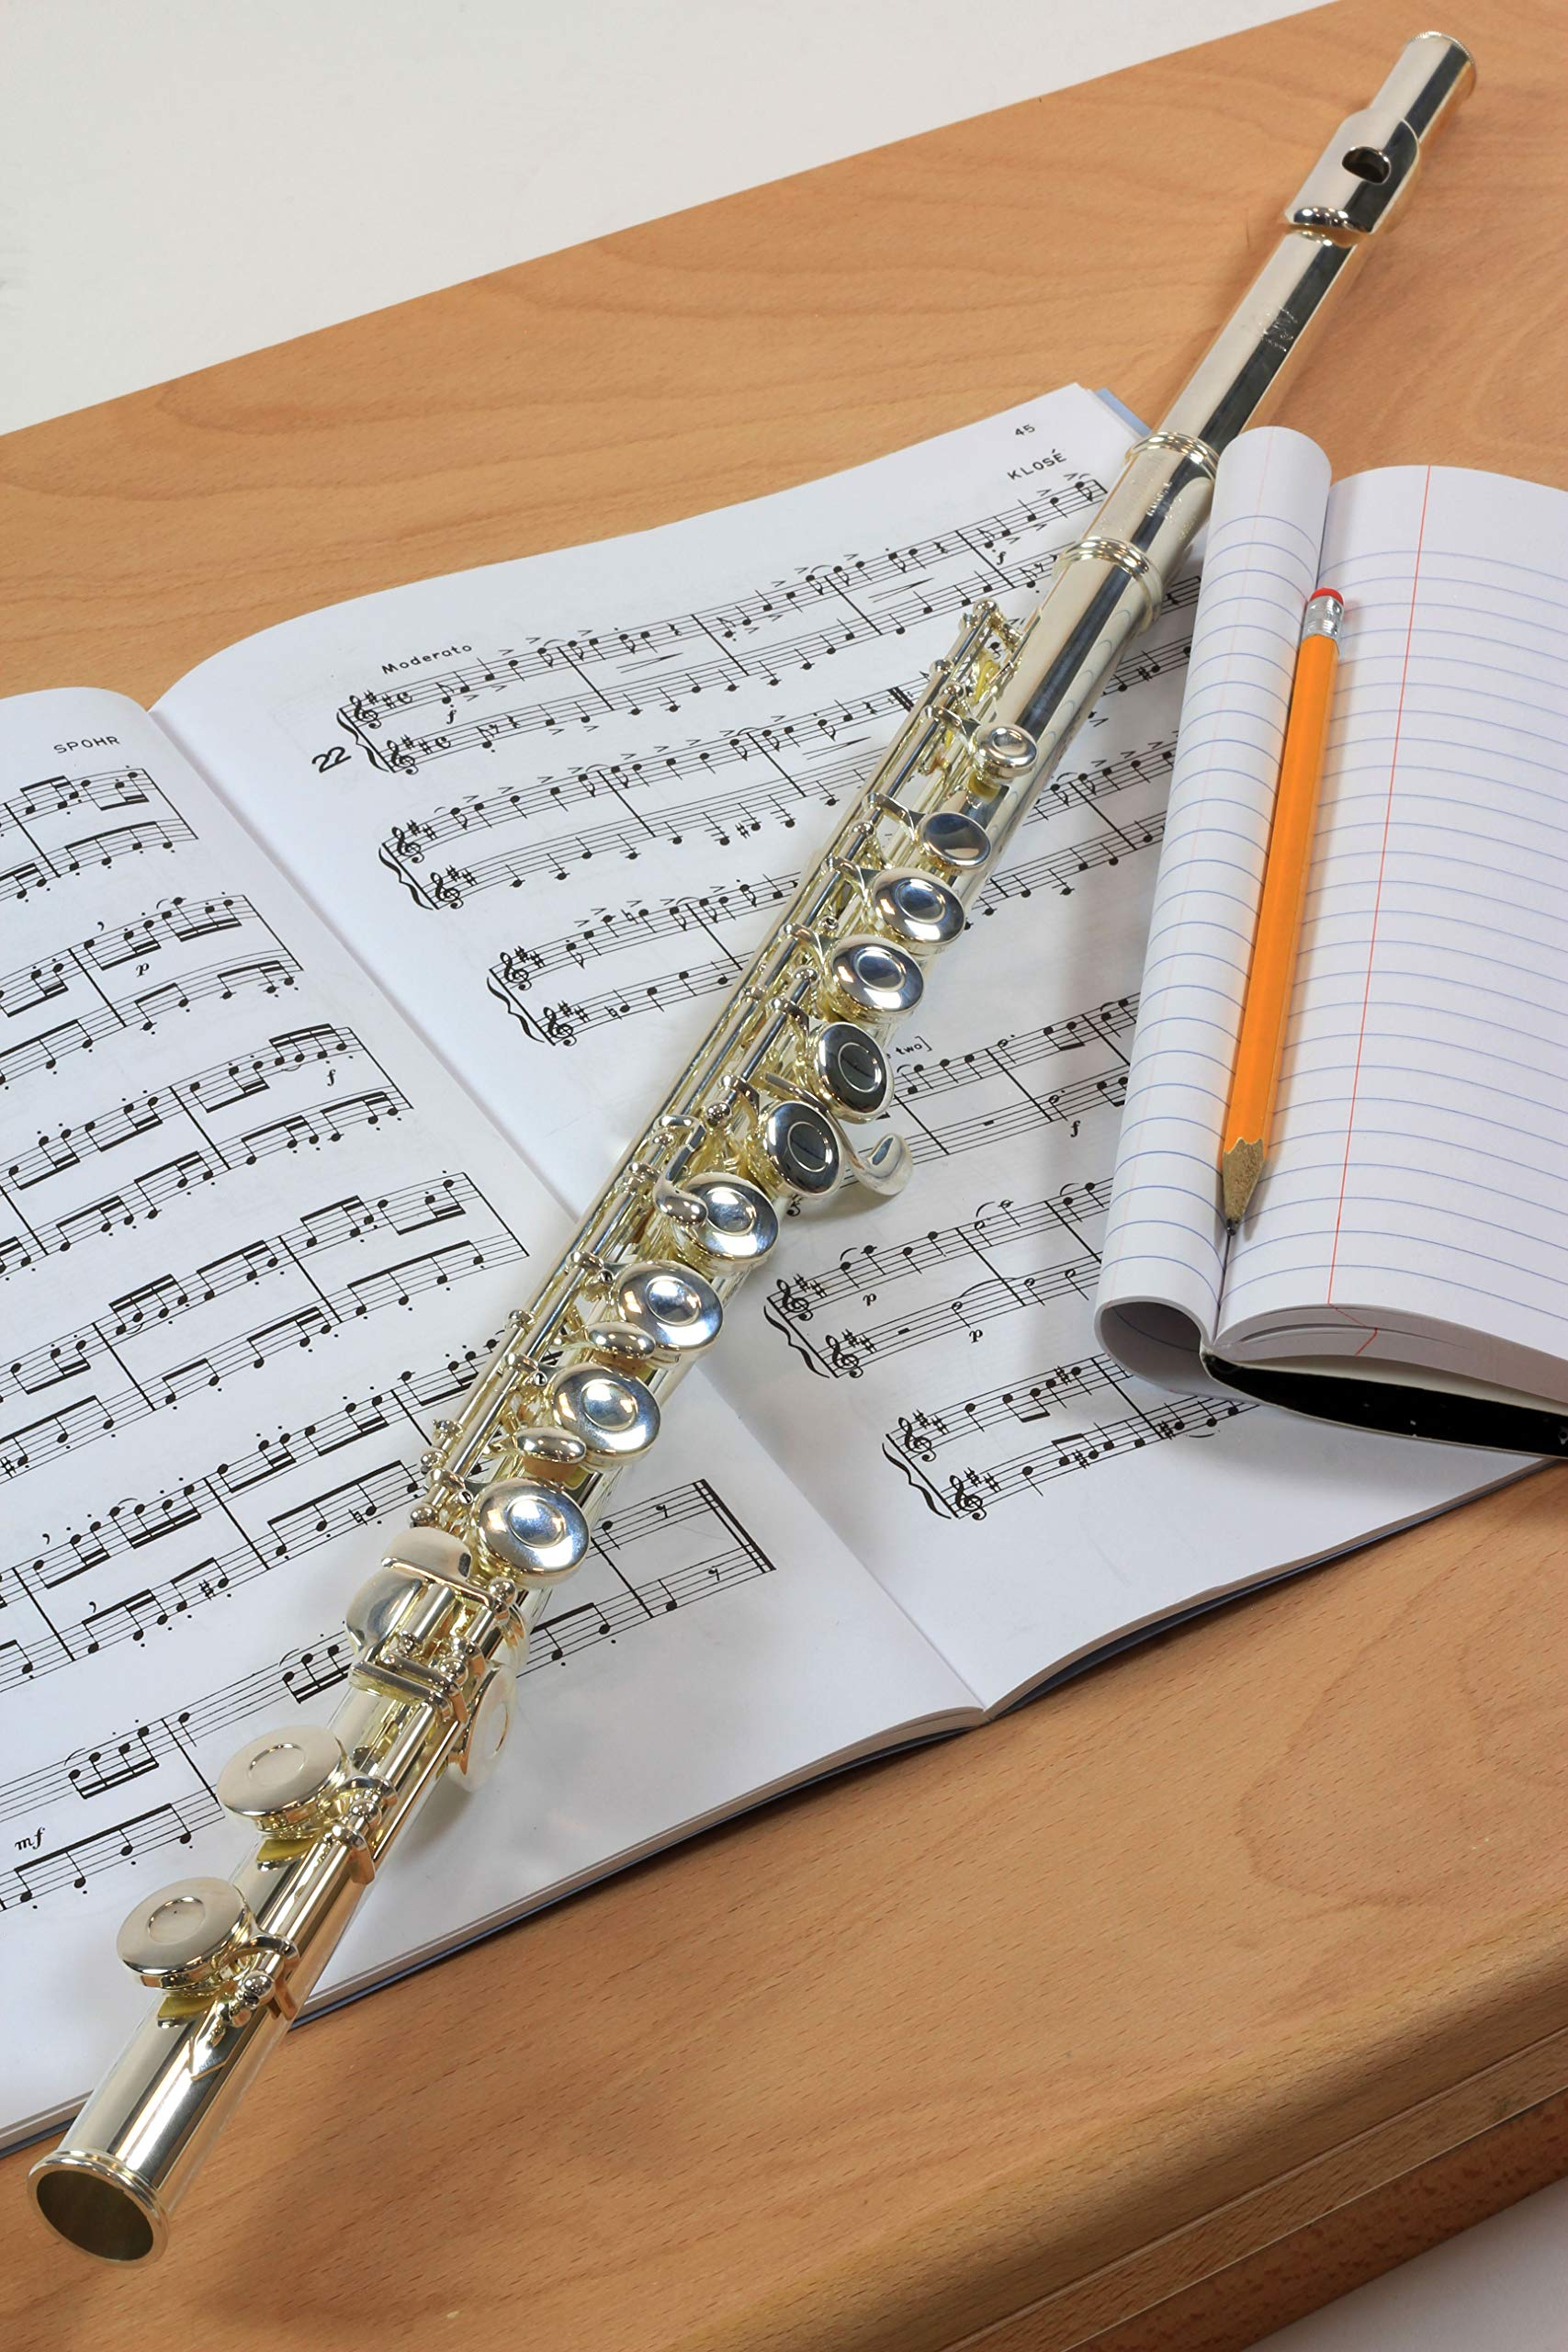 Ravel By Gemeinhardt Silver-Plated Flute (202SP) by Ravel (Image #3)